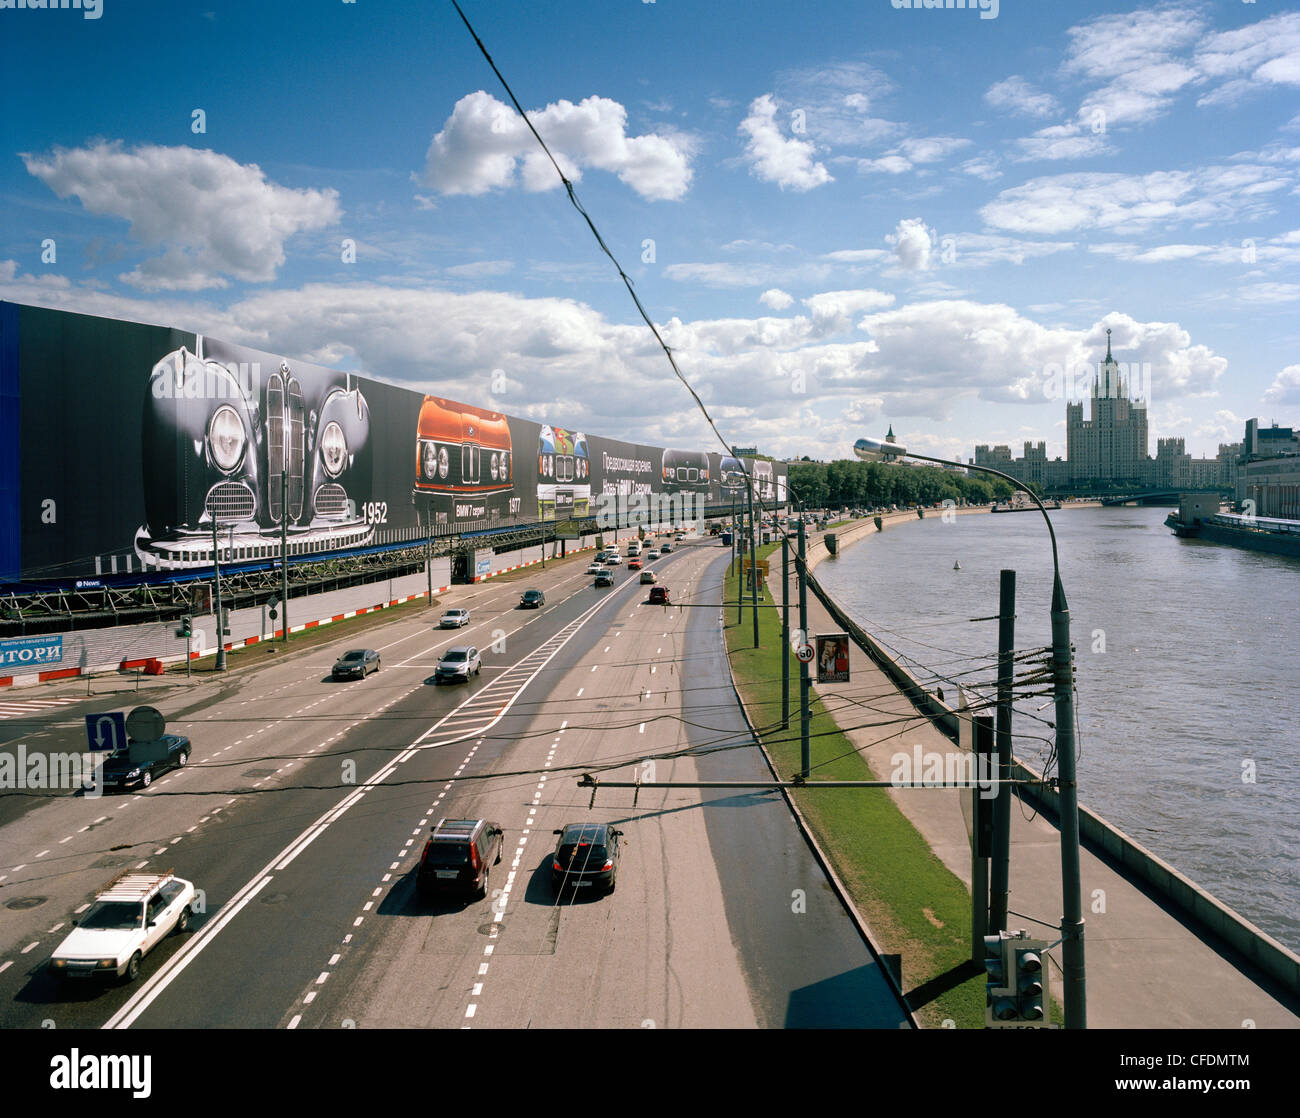 View on billboards and street along river Moskva, Moscow, Russia, Europe - Stock Image